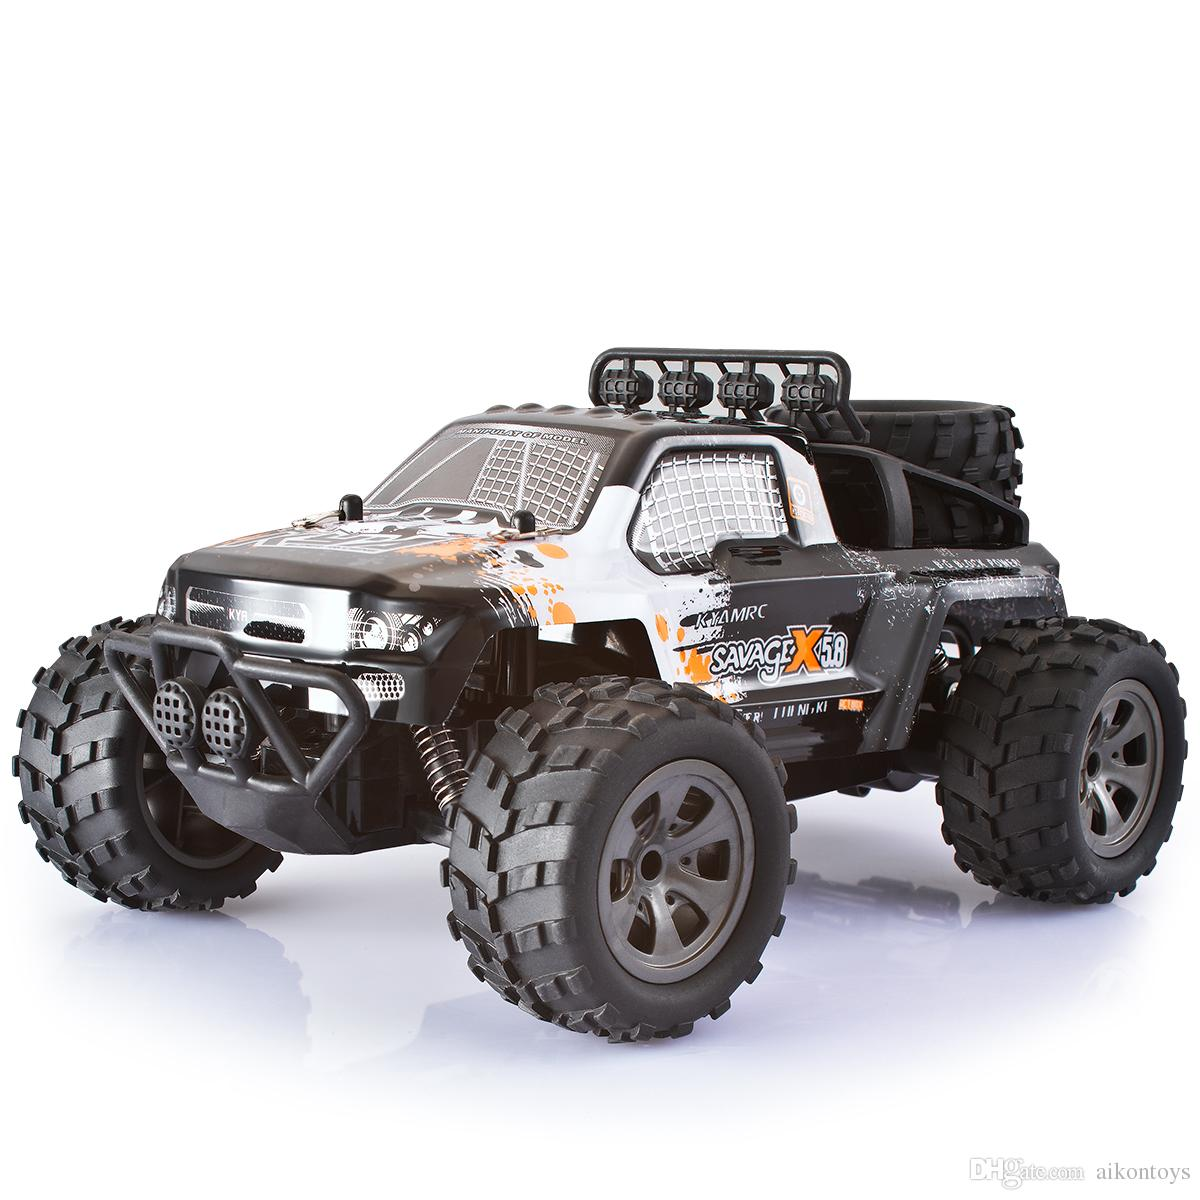 Monster Truck Rc Cars >> 1 18 Scale Electric Rc Car Off Road High Speed 2 4ghz Radio Control Monster Truck Rock Off Road Vehicle Buggy Hobby